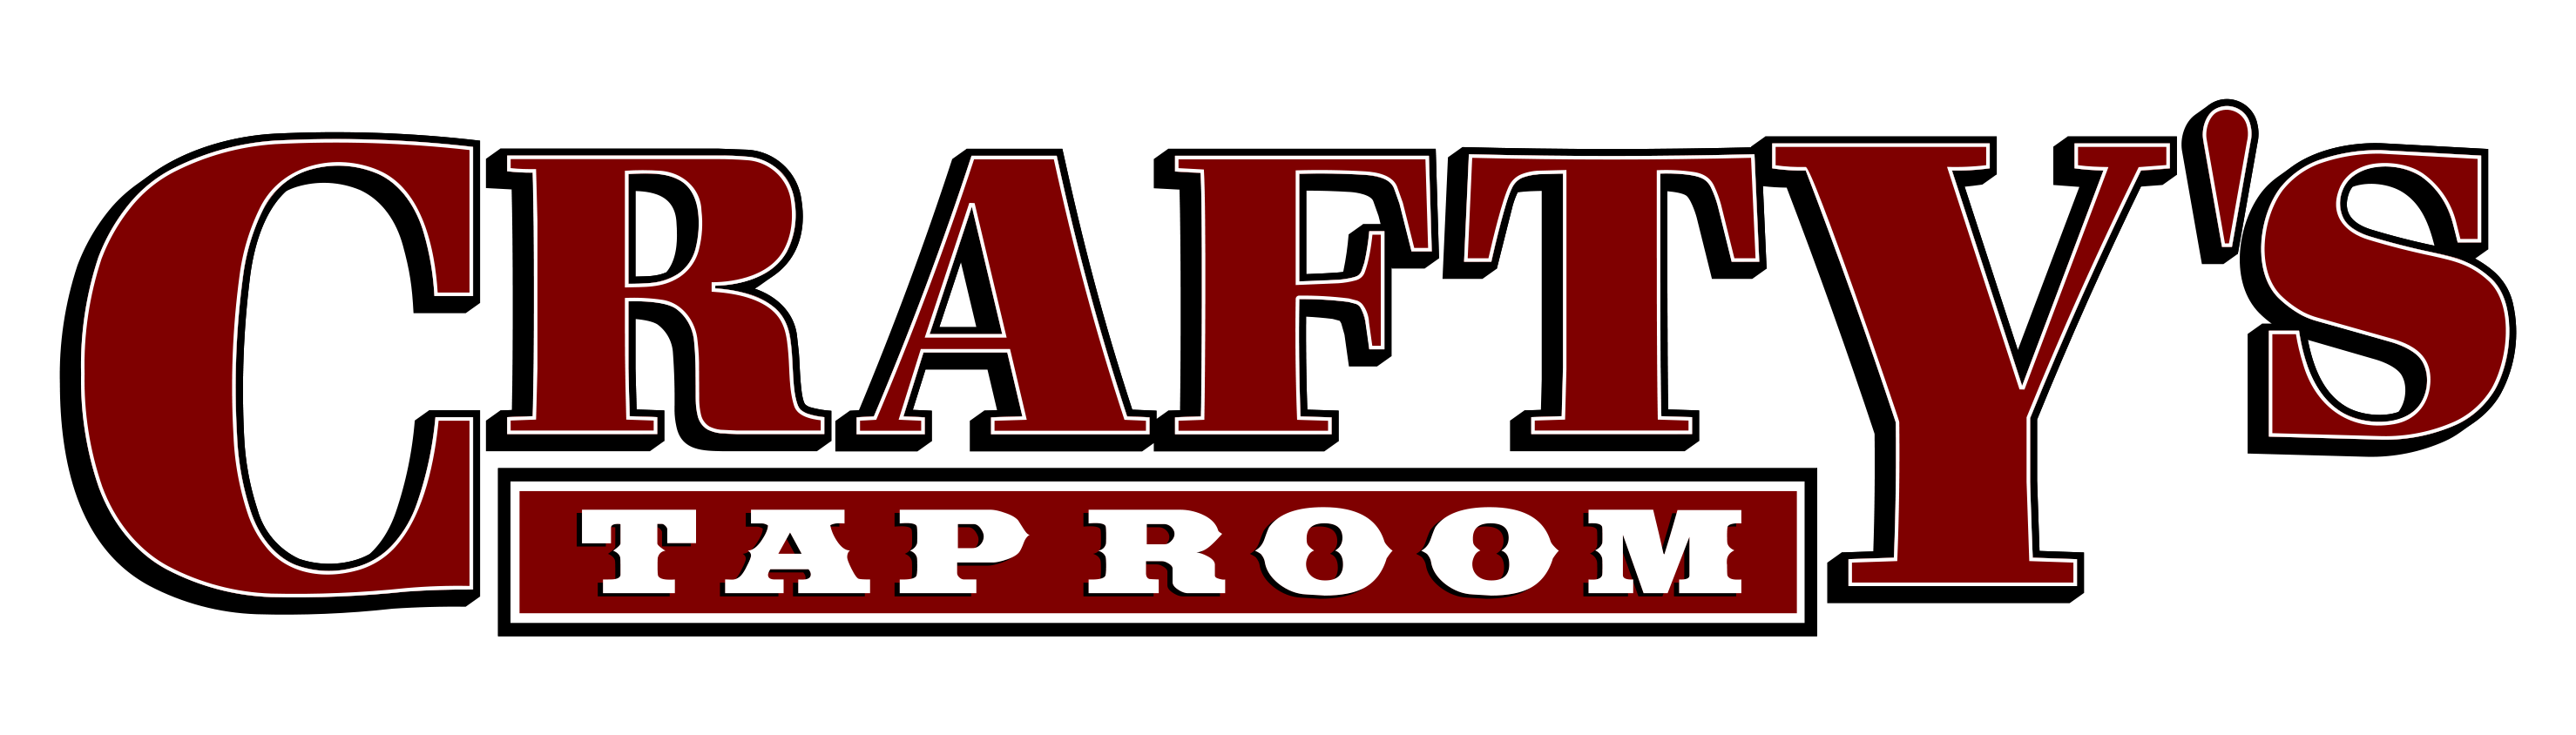 Crafty's Tap Room